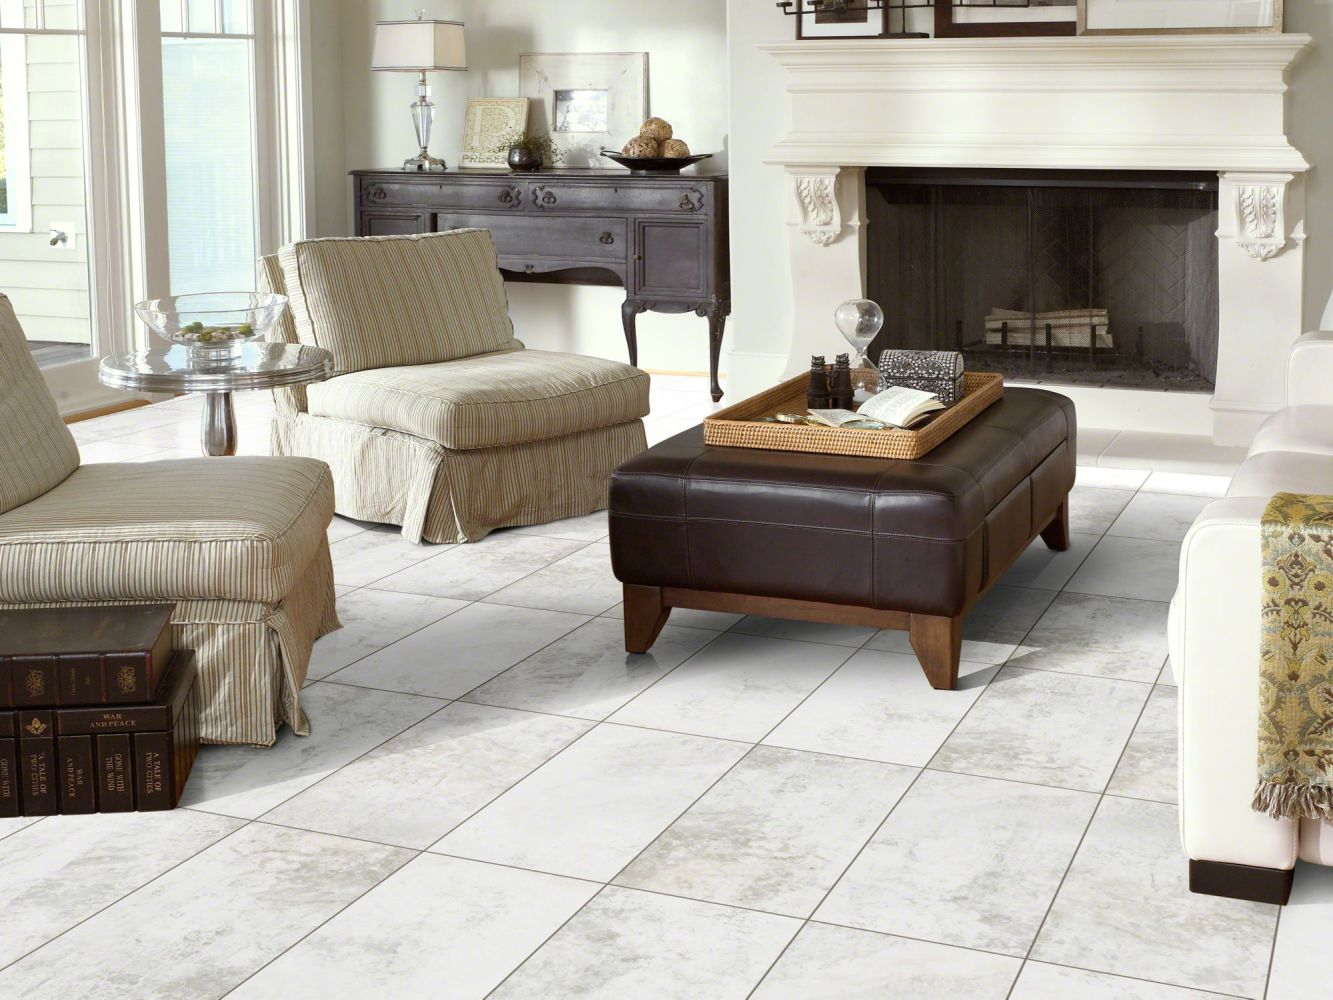 Shaw Floors Vinyl Residential Fairmount Ti 20 Sweetbriar 00547_0414V